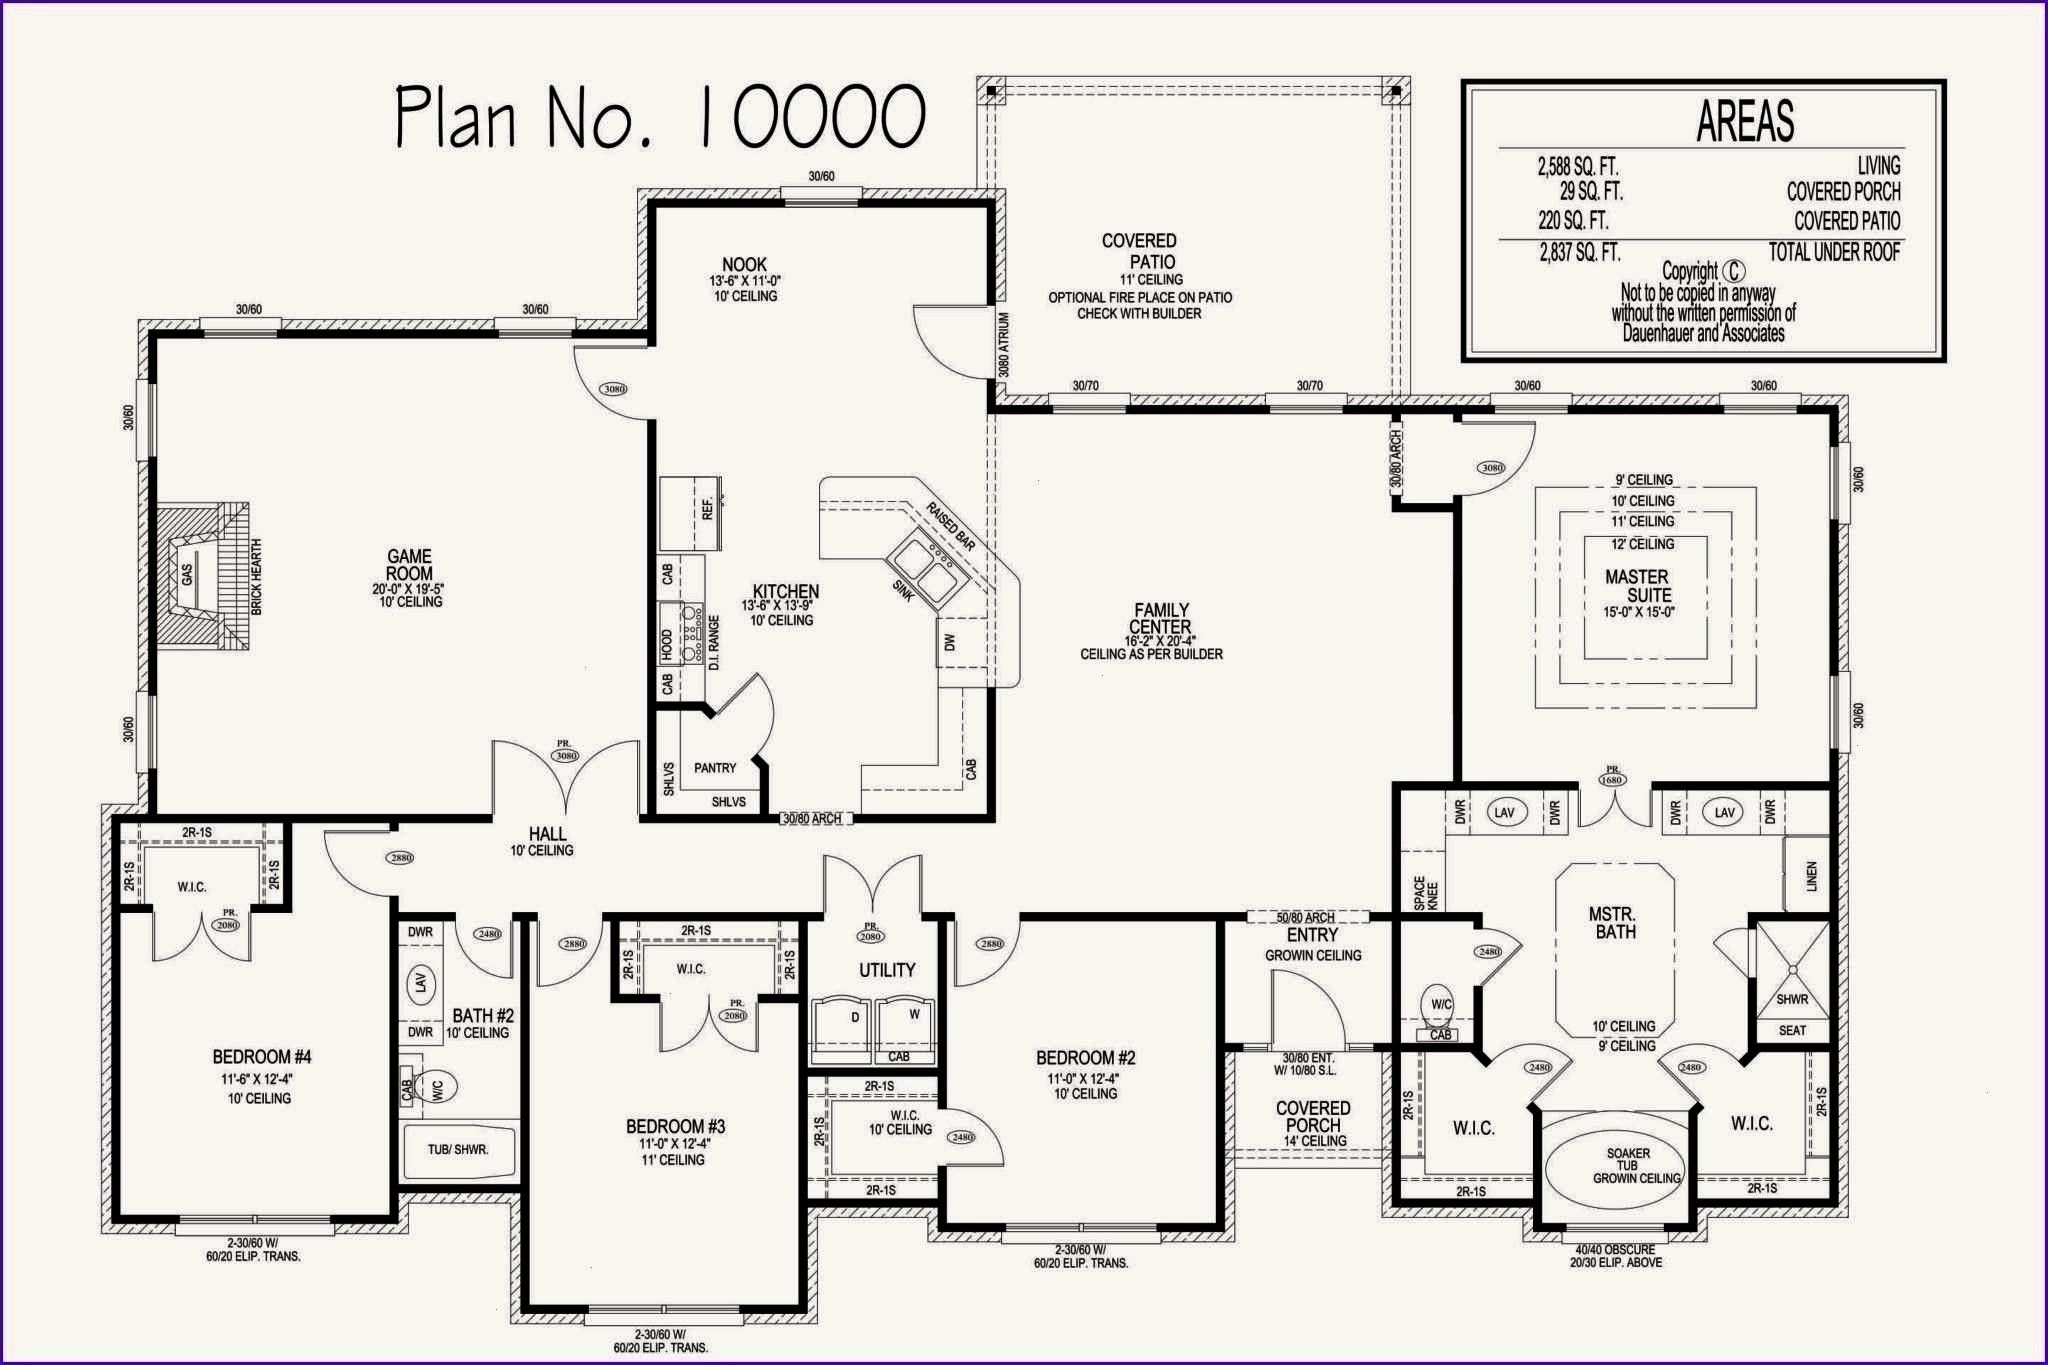 Ft House Plans Awesome 2200 Sq Ft House Plans 2200 Sq Ft House Plans  Awesome 2200 Sq Ft House Plans  House Plans 2501 to 3000 Sq Ft House Plans by DauenhauerAwesome 2200...